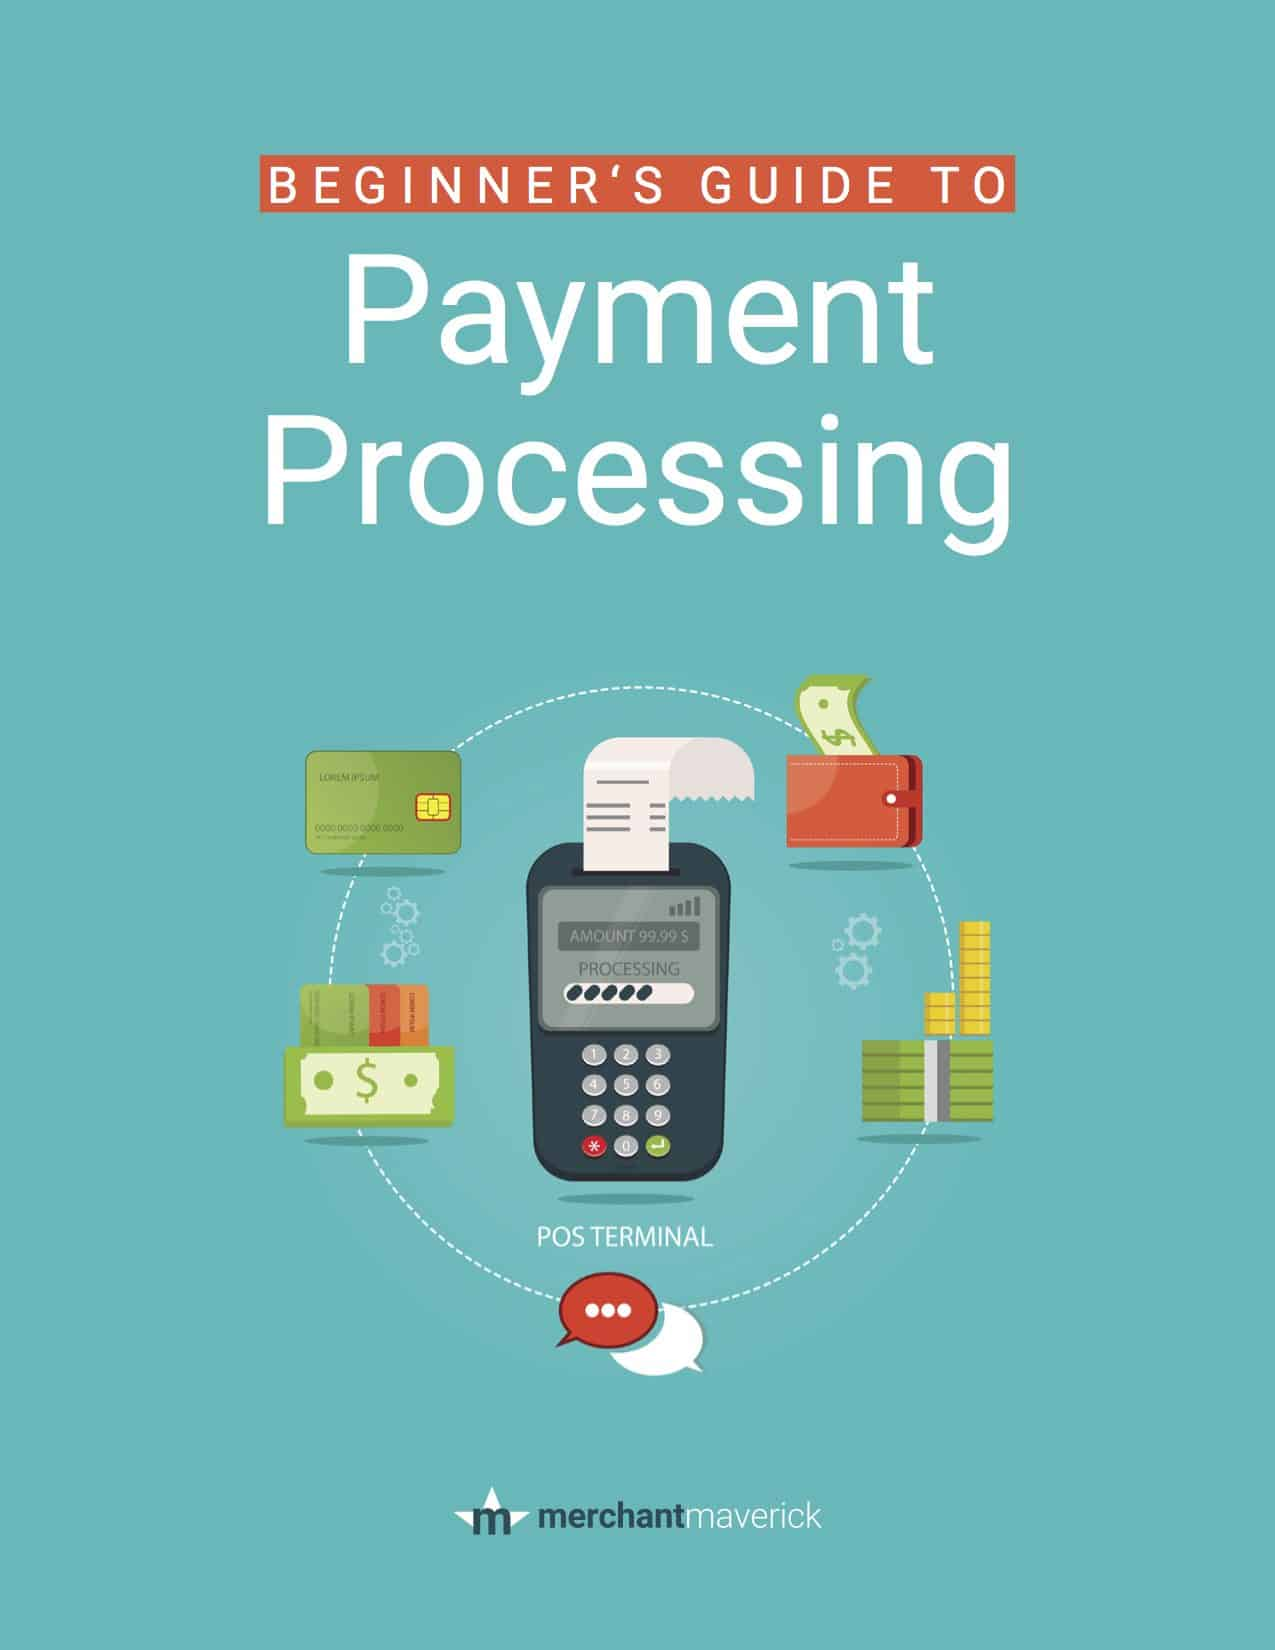 Beginner's Guide to Payment Processing - Merchant Maverick